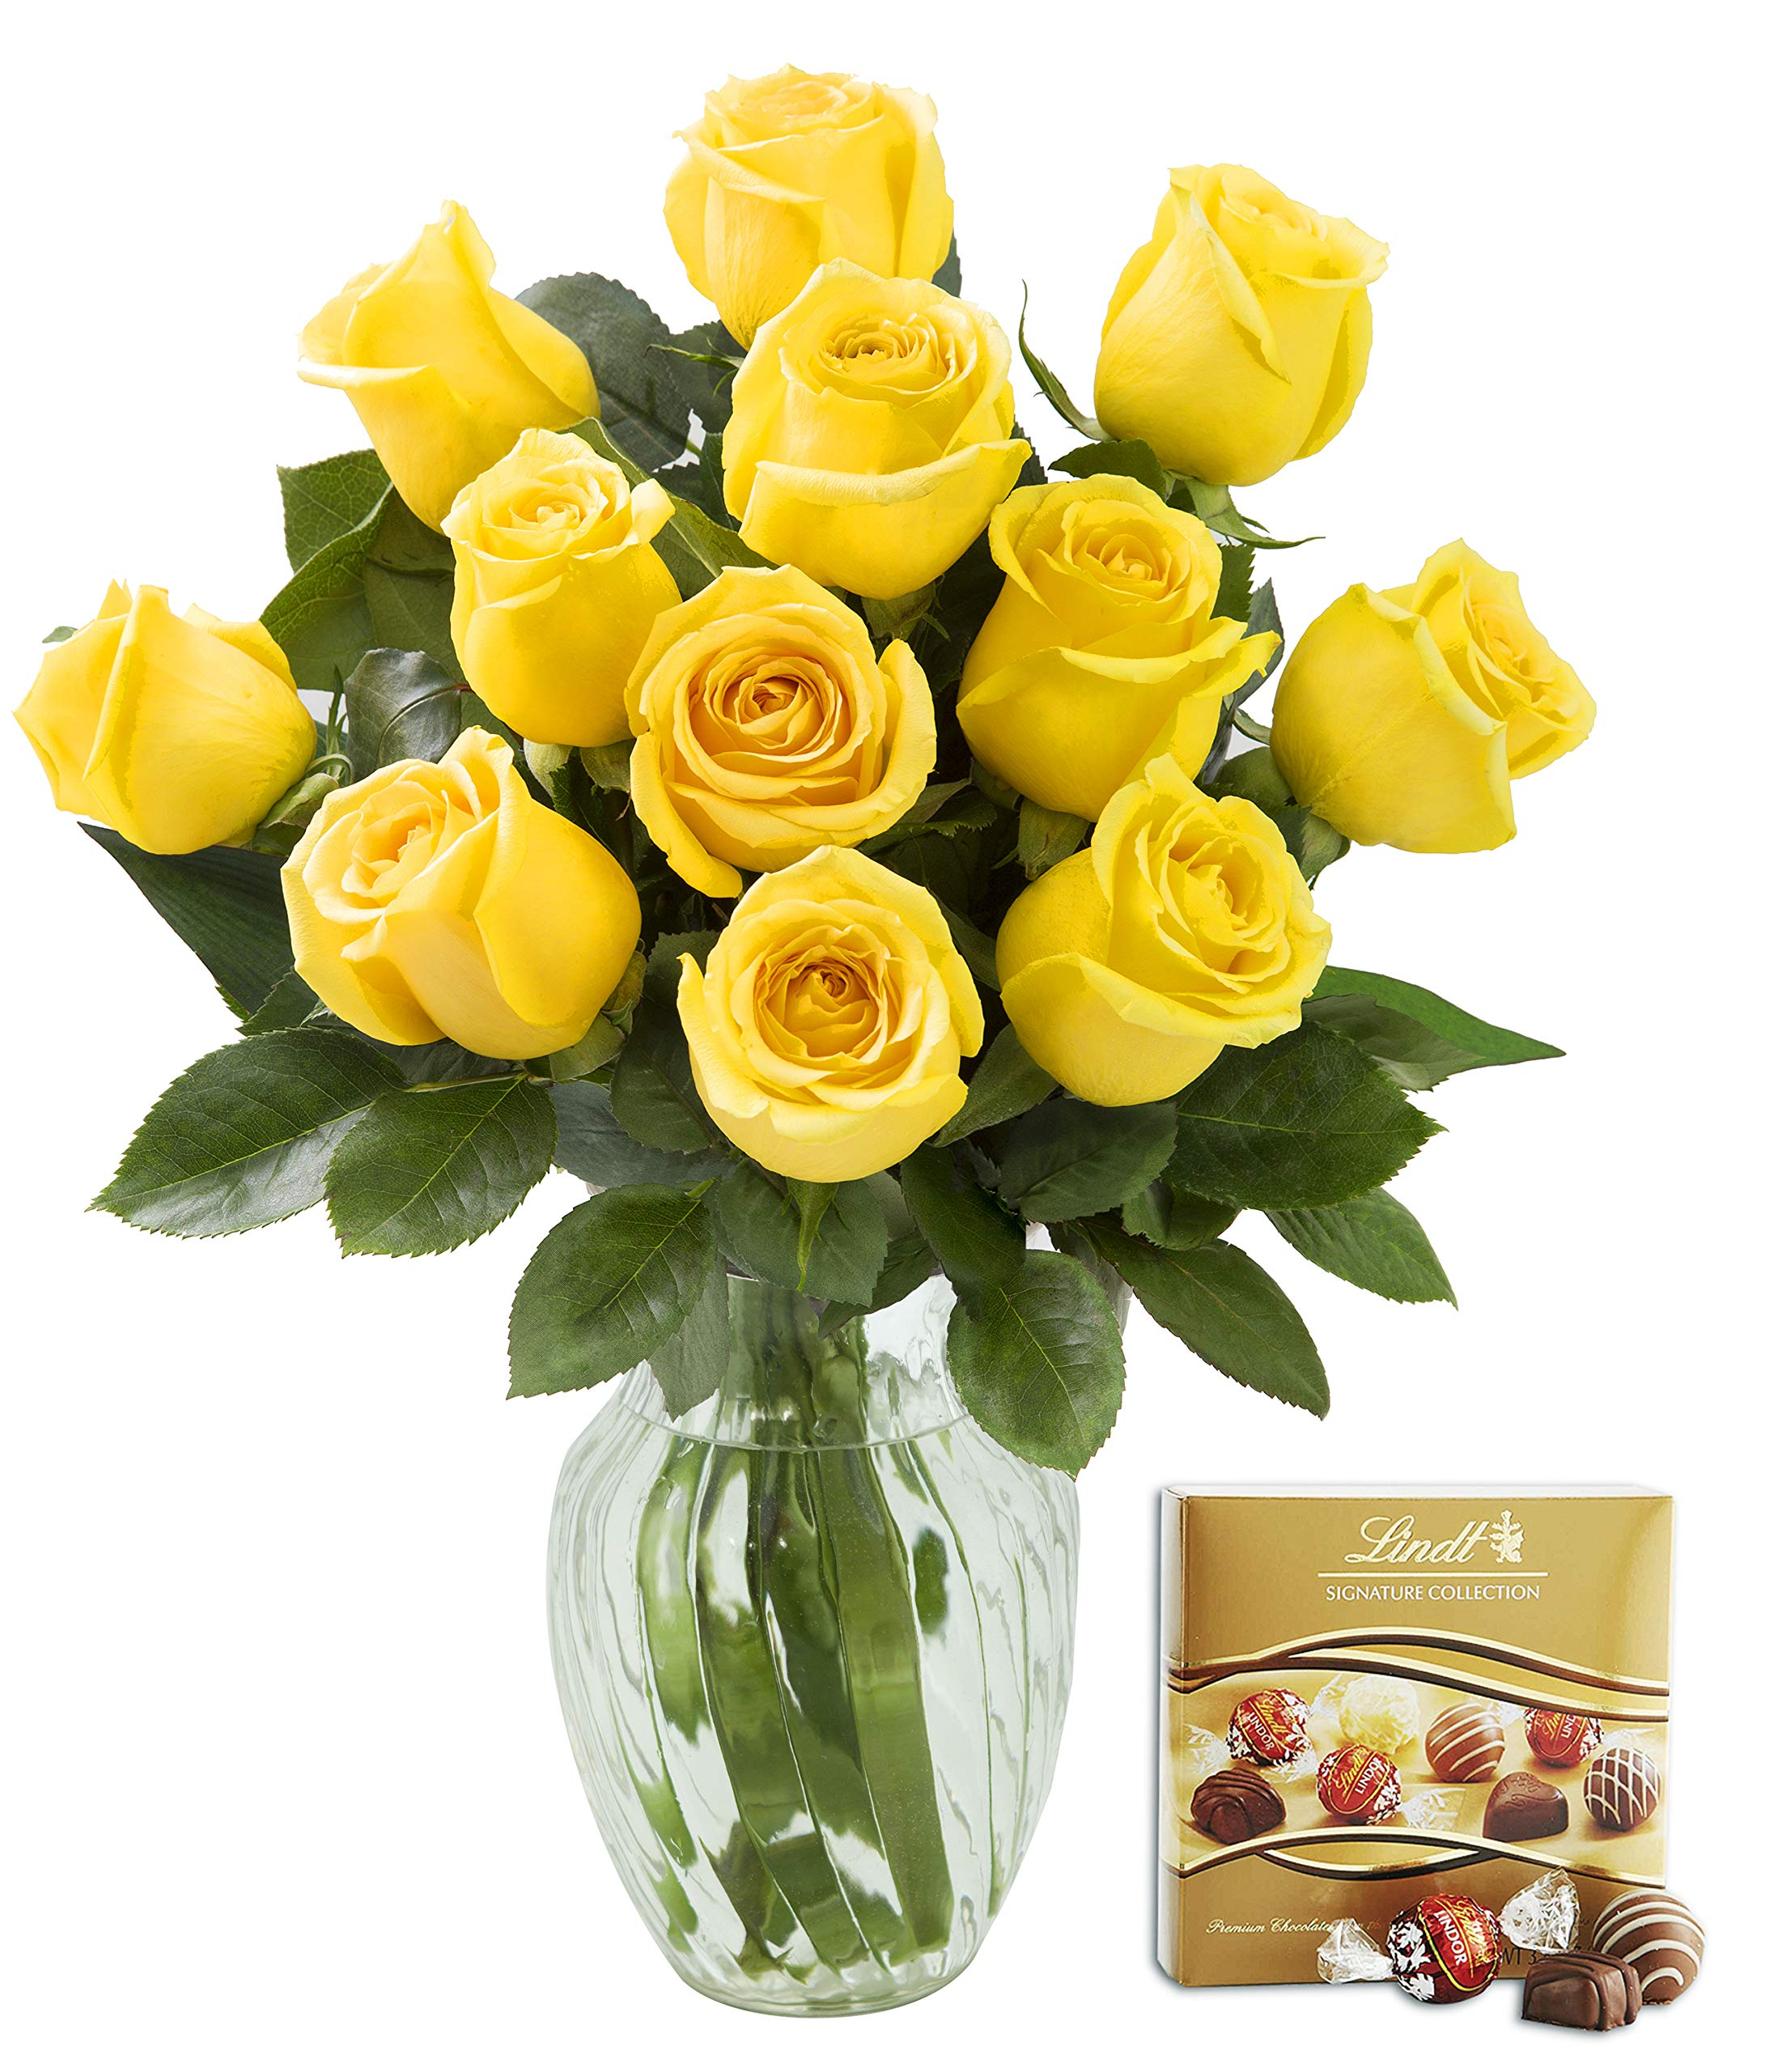 KaBloom Bouquet of 12 Fresh Yellow Roses (Farm-Fresh, Long-Stem) with Vase and One Box of Lindt Chocolates